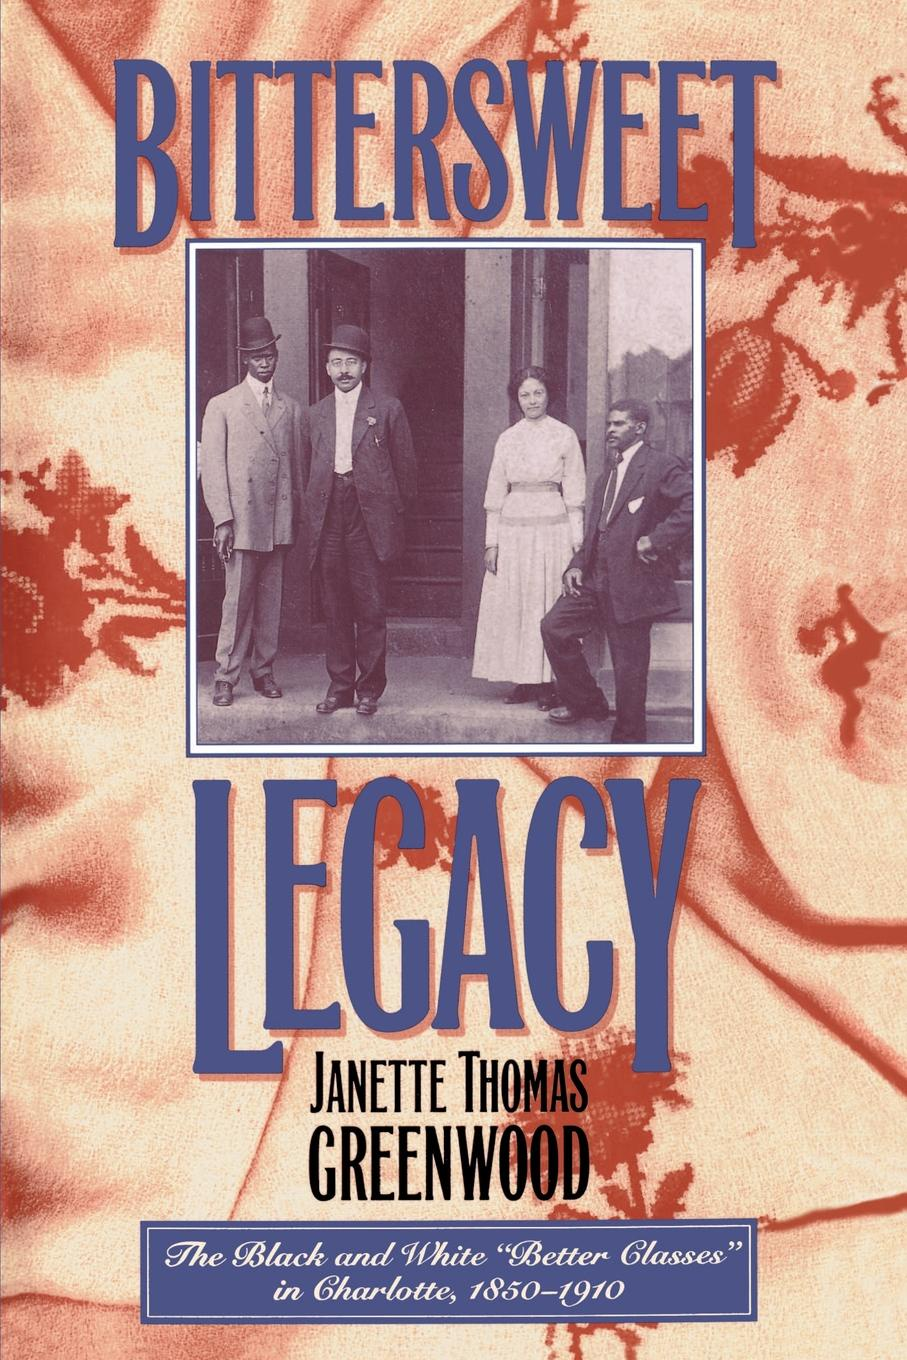 Janette Thomas Greenwood Bittersweet Legacy. The Black and White